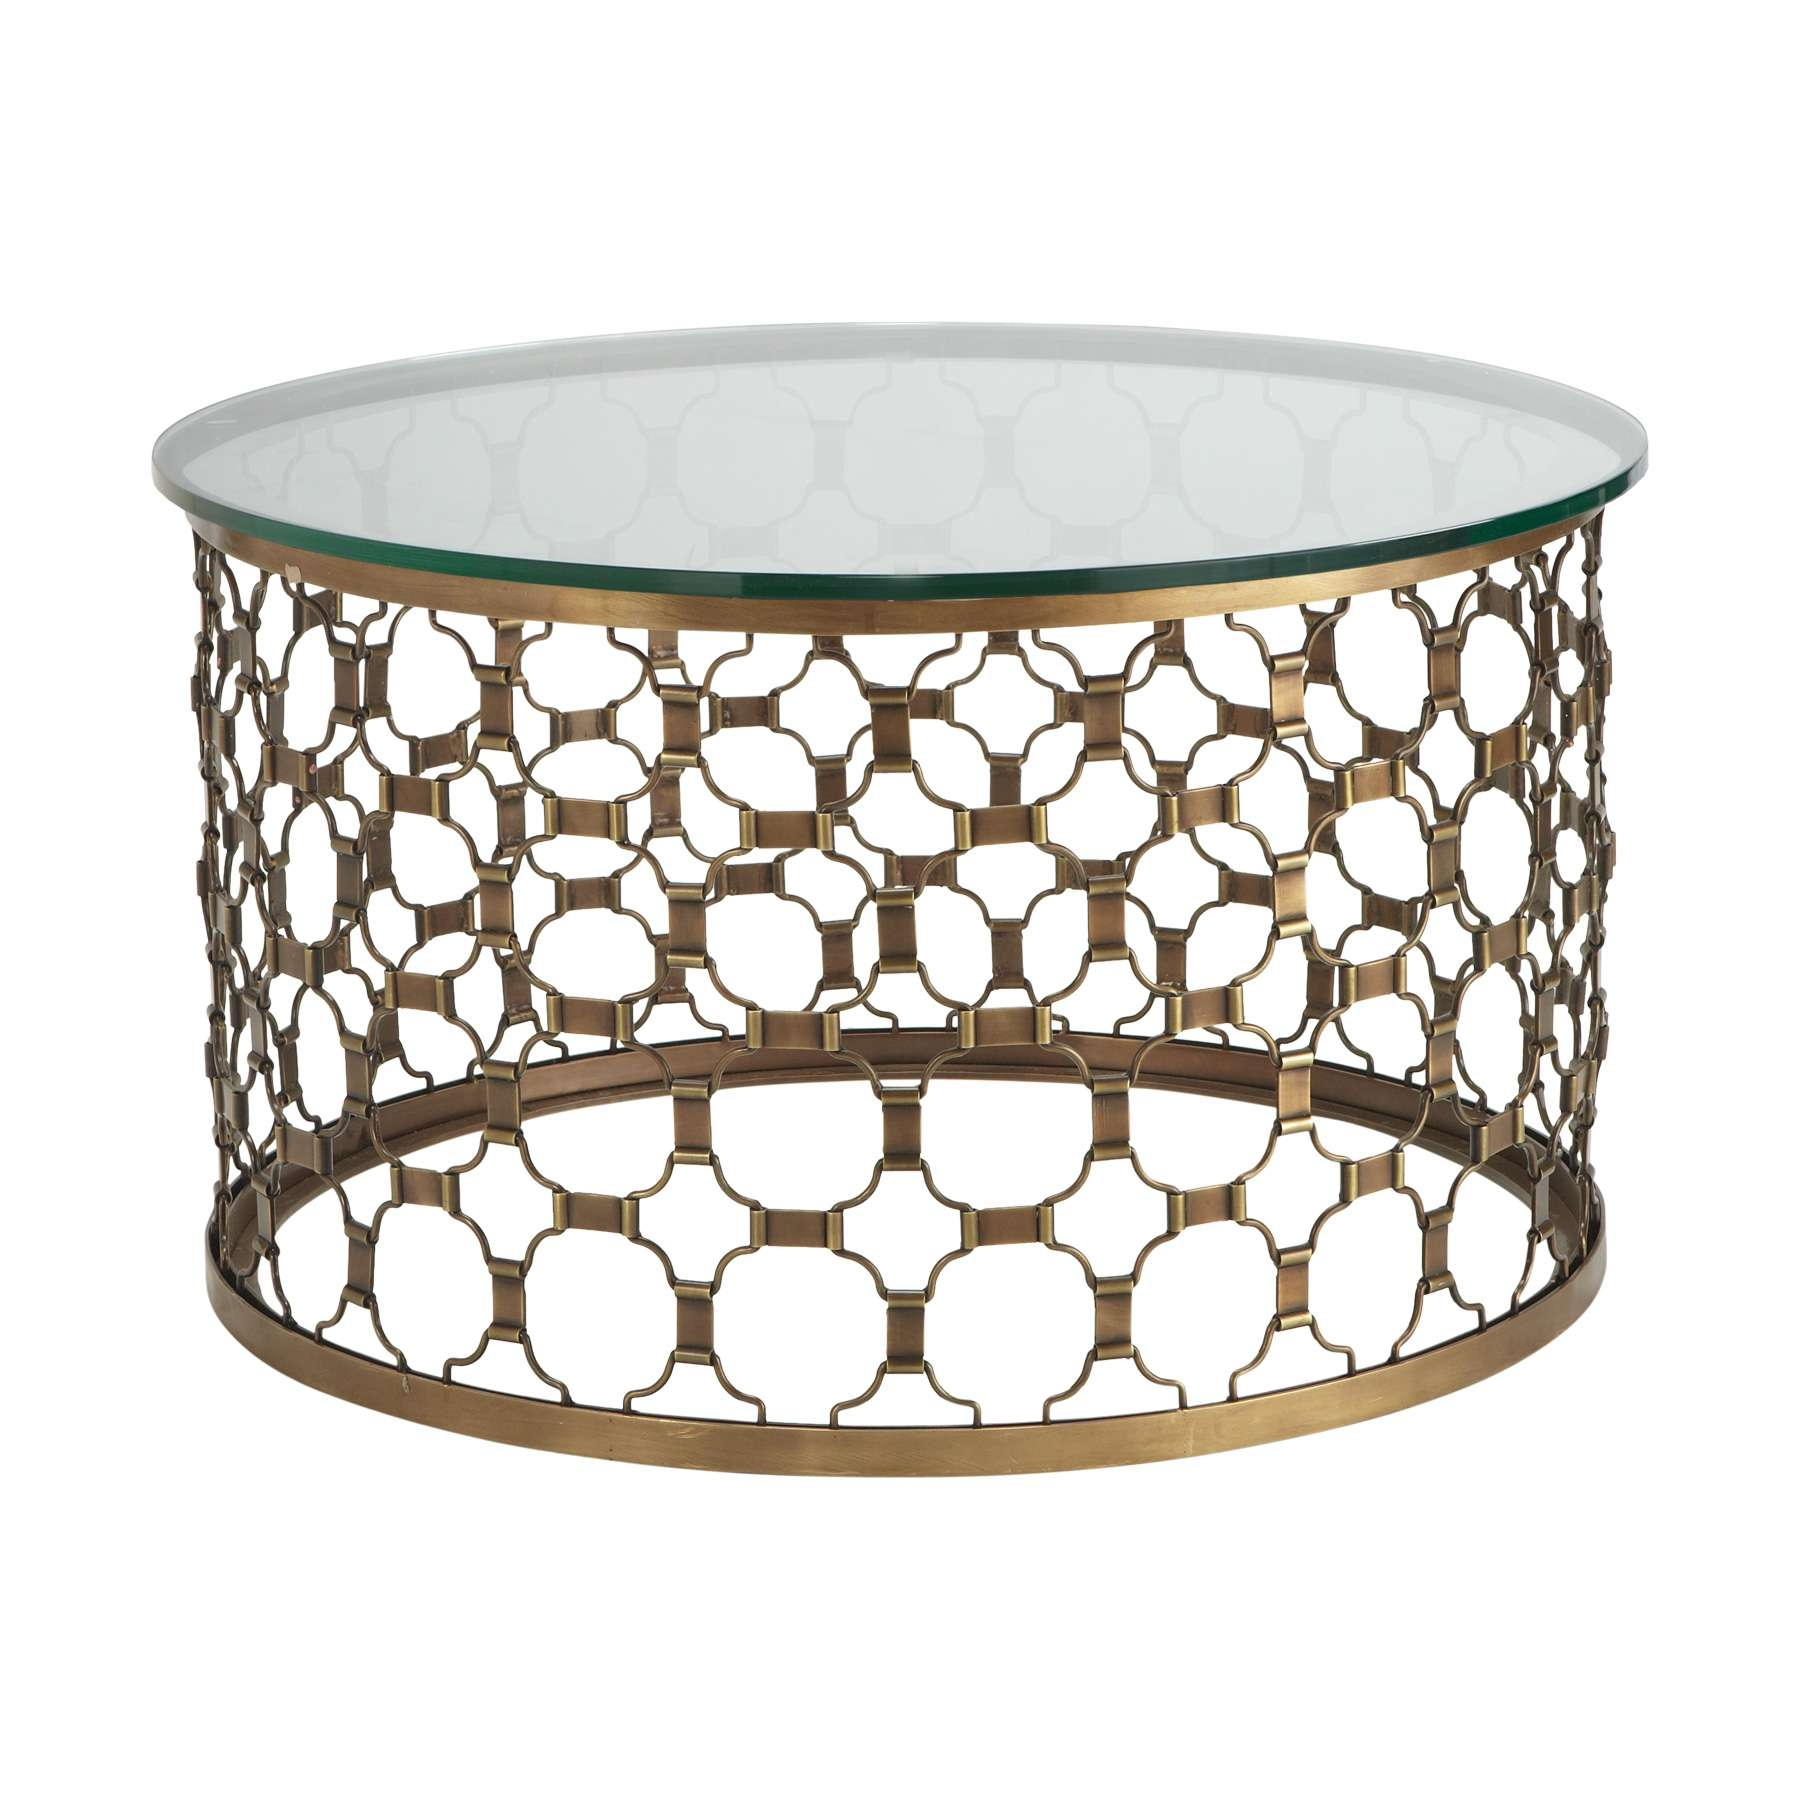 Coffee Table : Naomi 30inch Round Coffee Table Elegant Gold Metal Regarding Favorite Metal Round Coffee Tables (View 12 of 20)